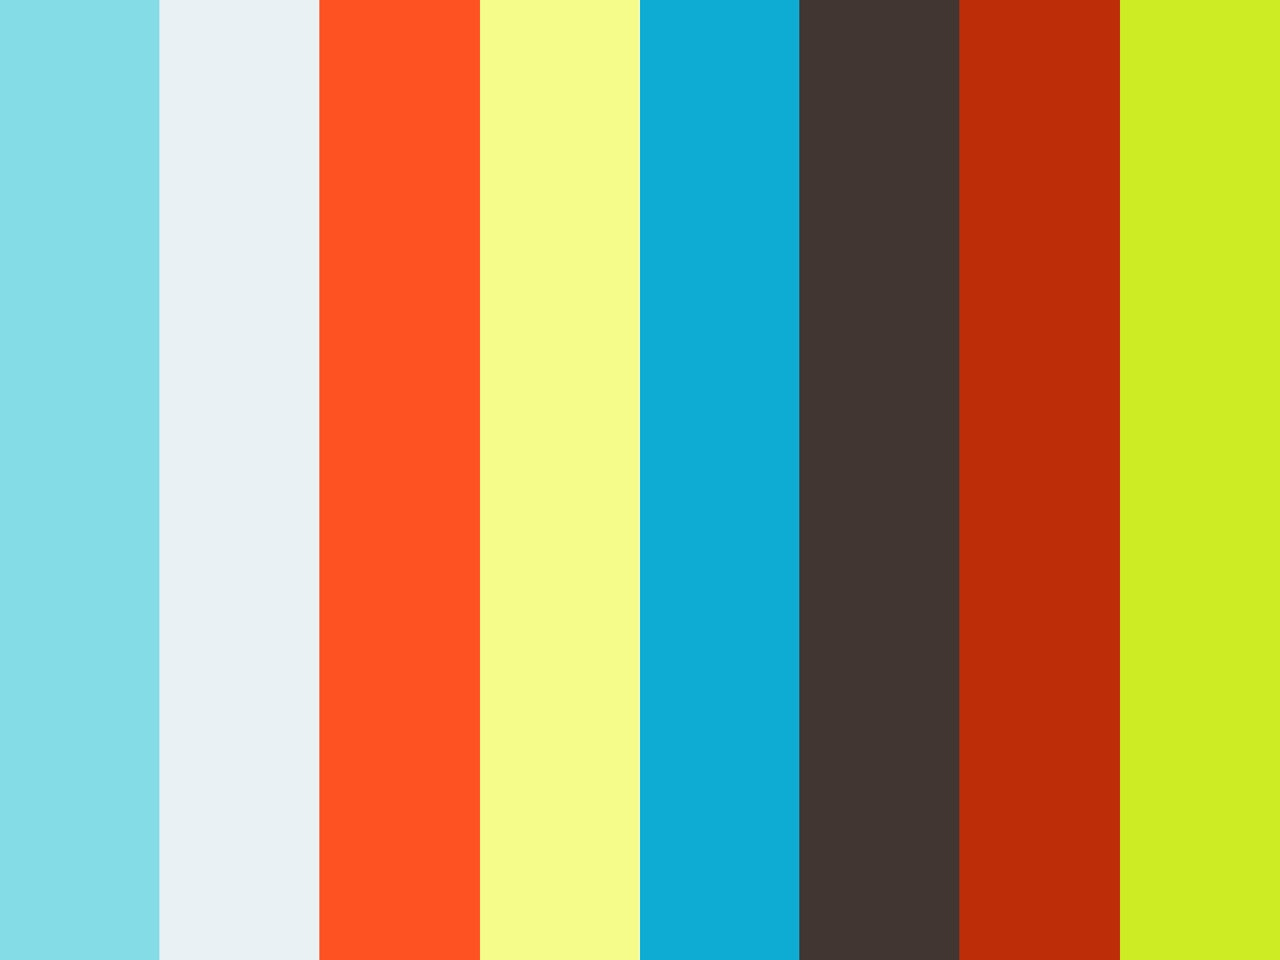 Mohawk Girl - Cinema 4D